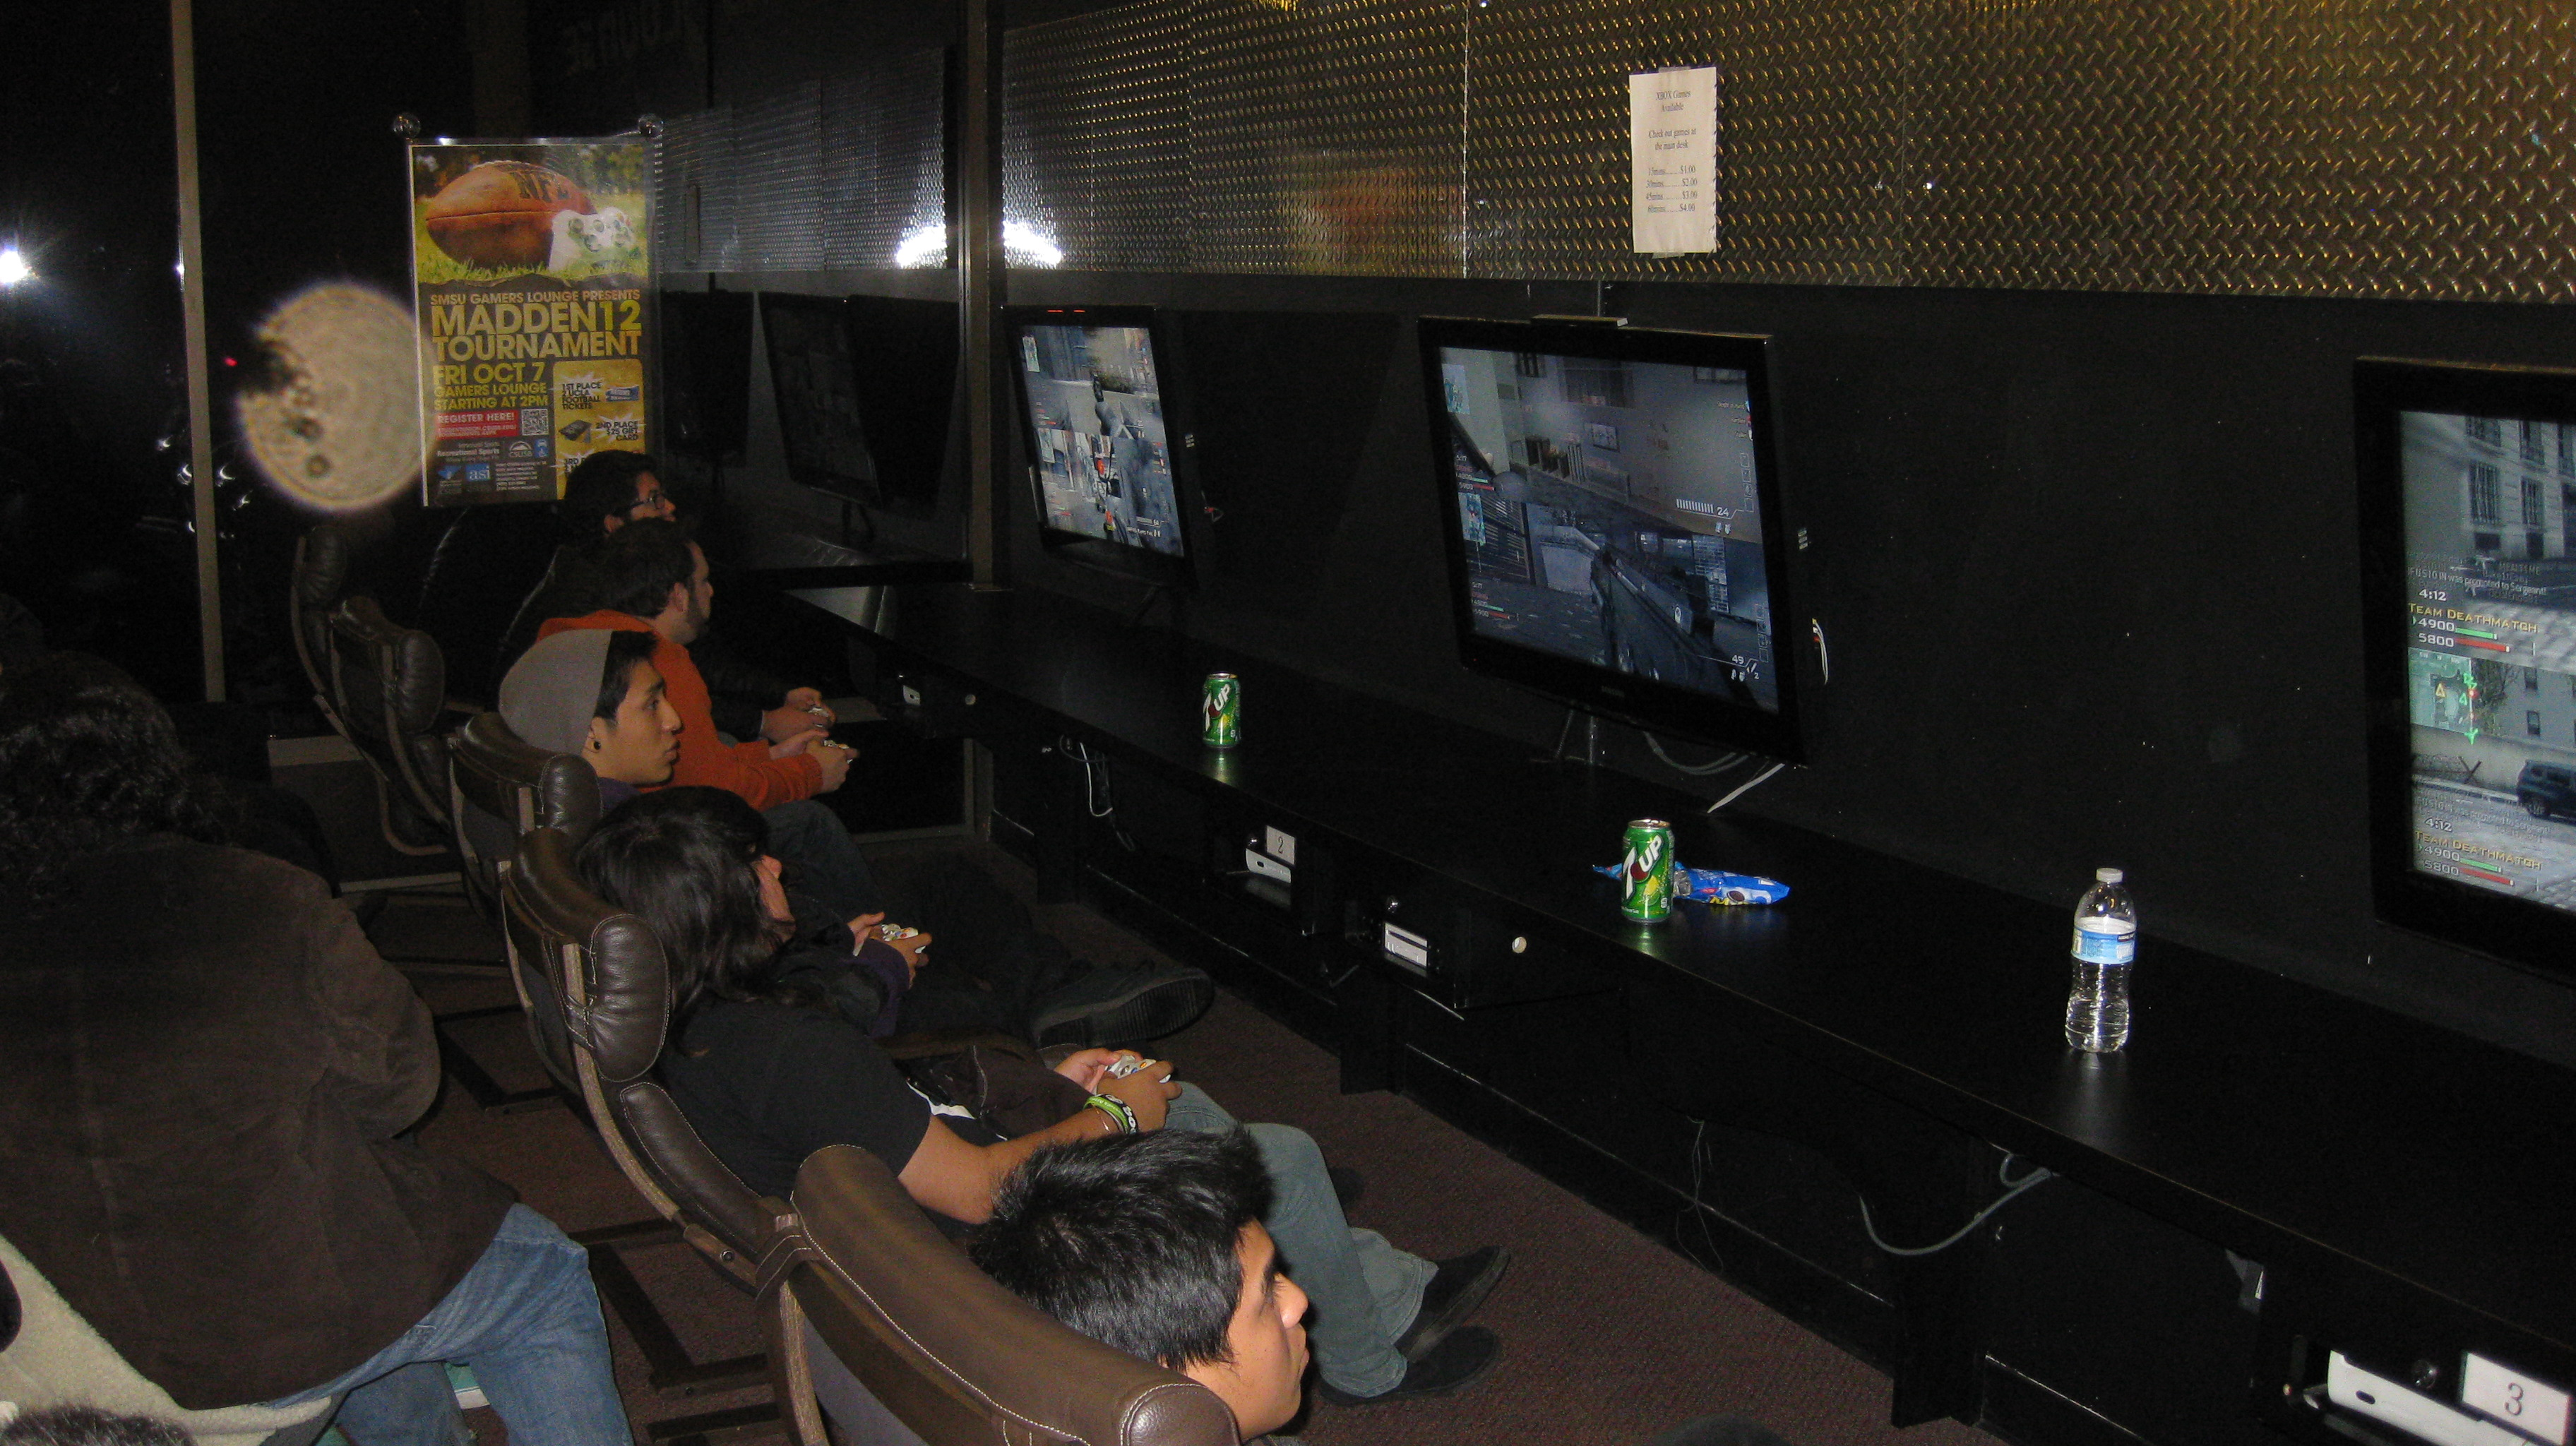 Midnight Madness calls gamers to duty